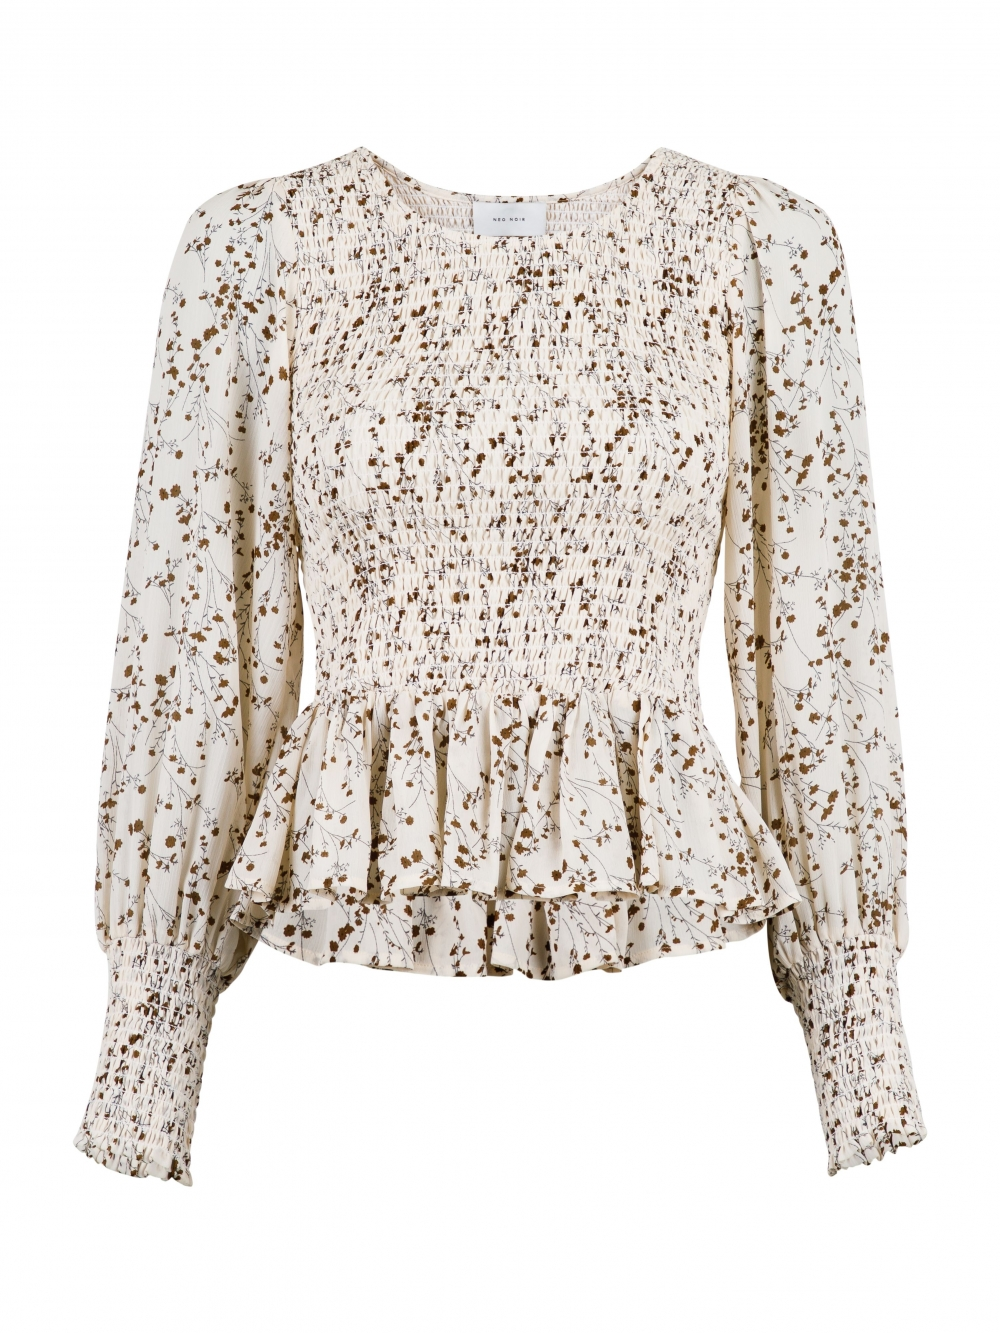 Neo Noir Stelli Flower Bud Blouse - Off-White